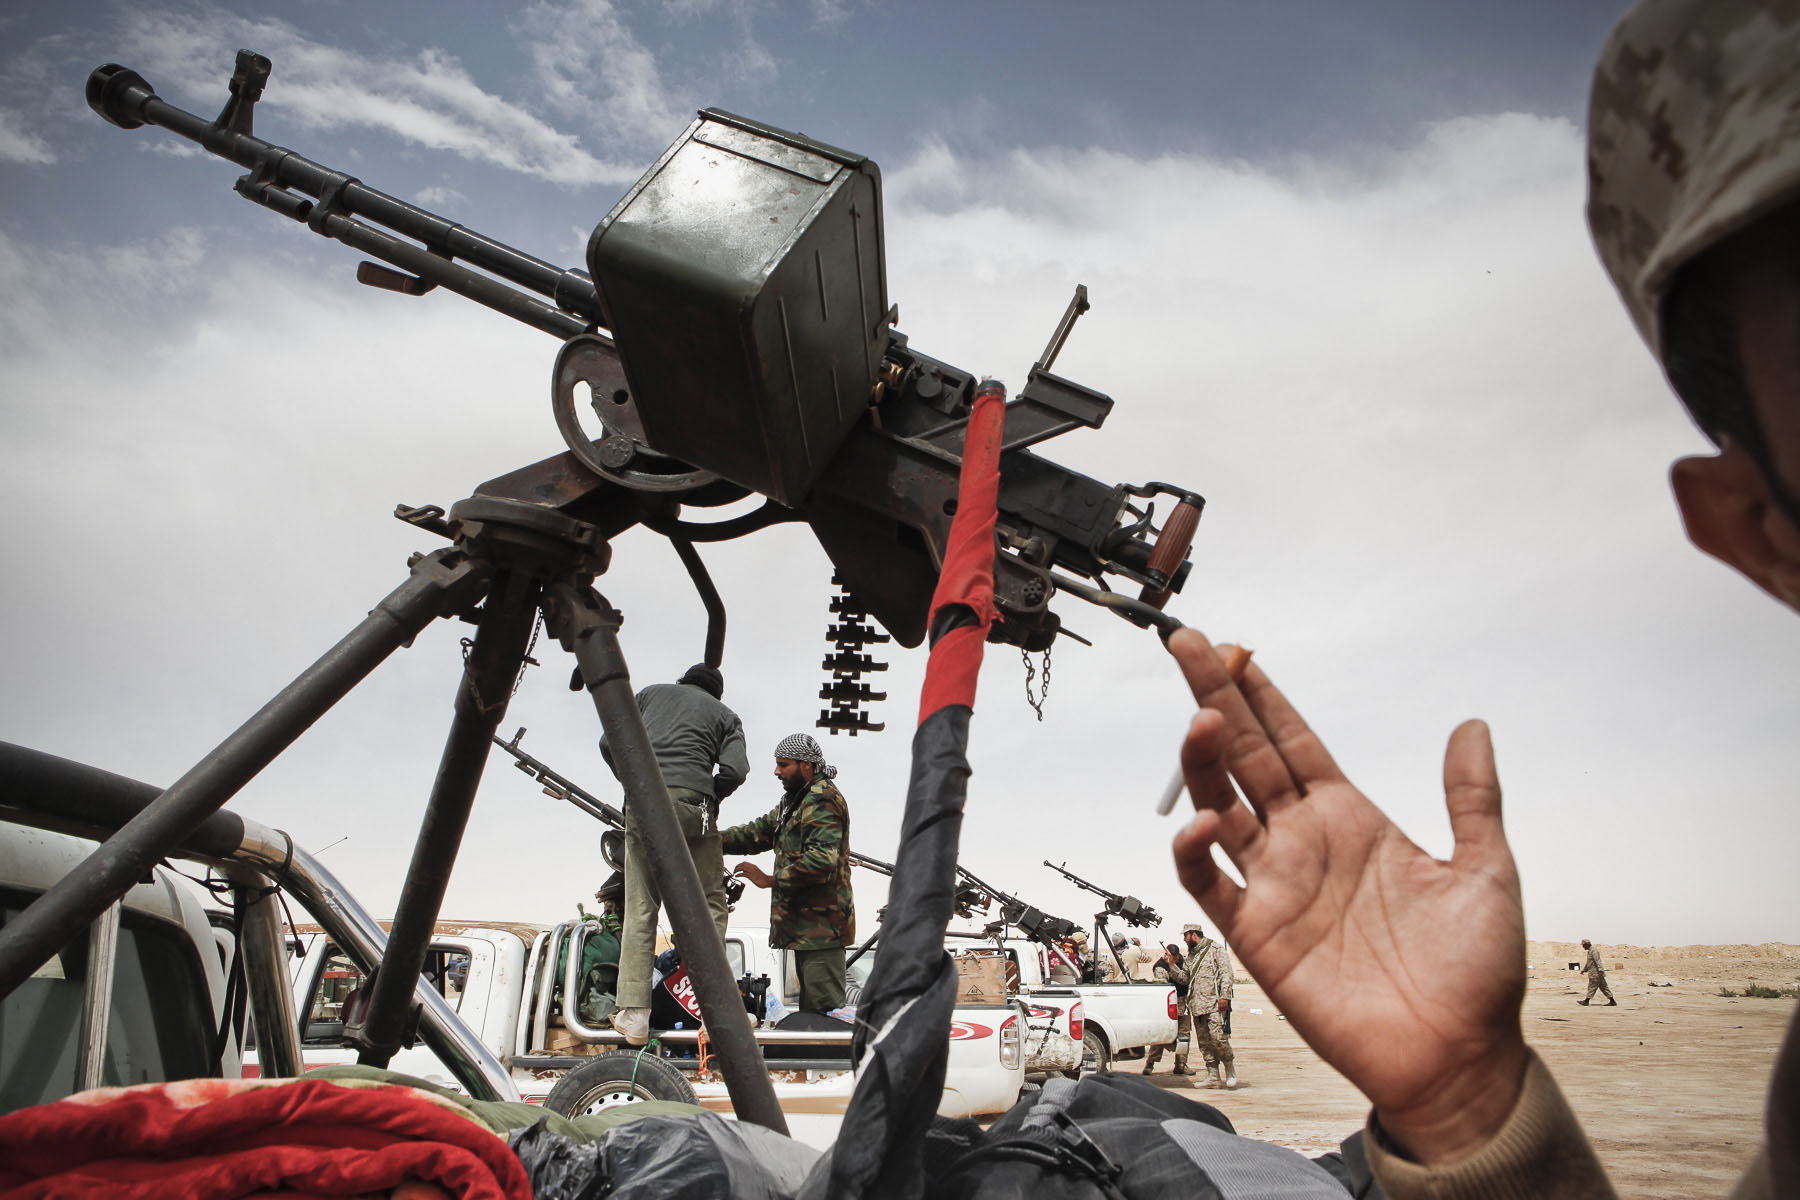 Libyan rebels prepare heavy machine guns before heading to the battle front in April 2011